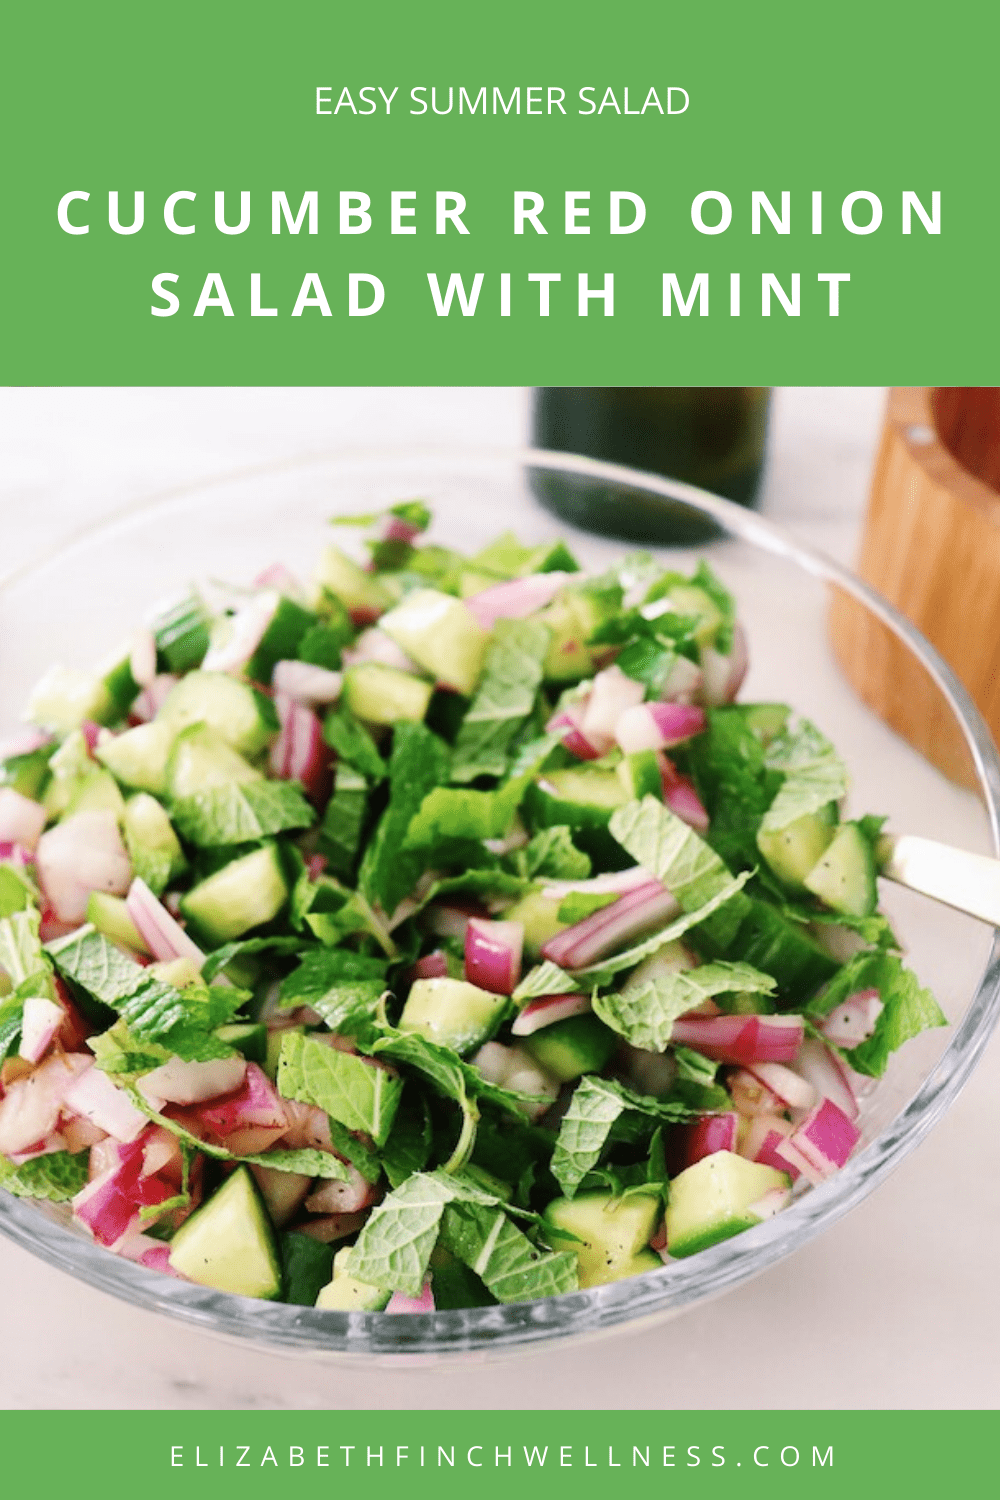 Easy Summer Salads: A Refreshing Cucumber Red Onion Salad With Mint recipe featured by top US wellness blogger, Elizabeth Finch Wellness.